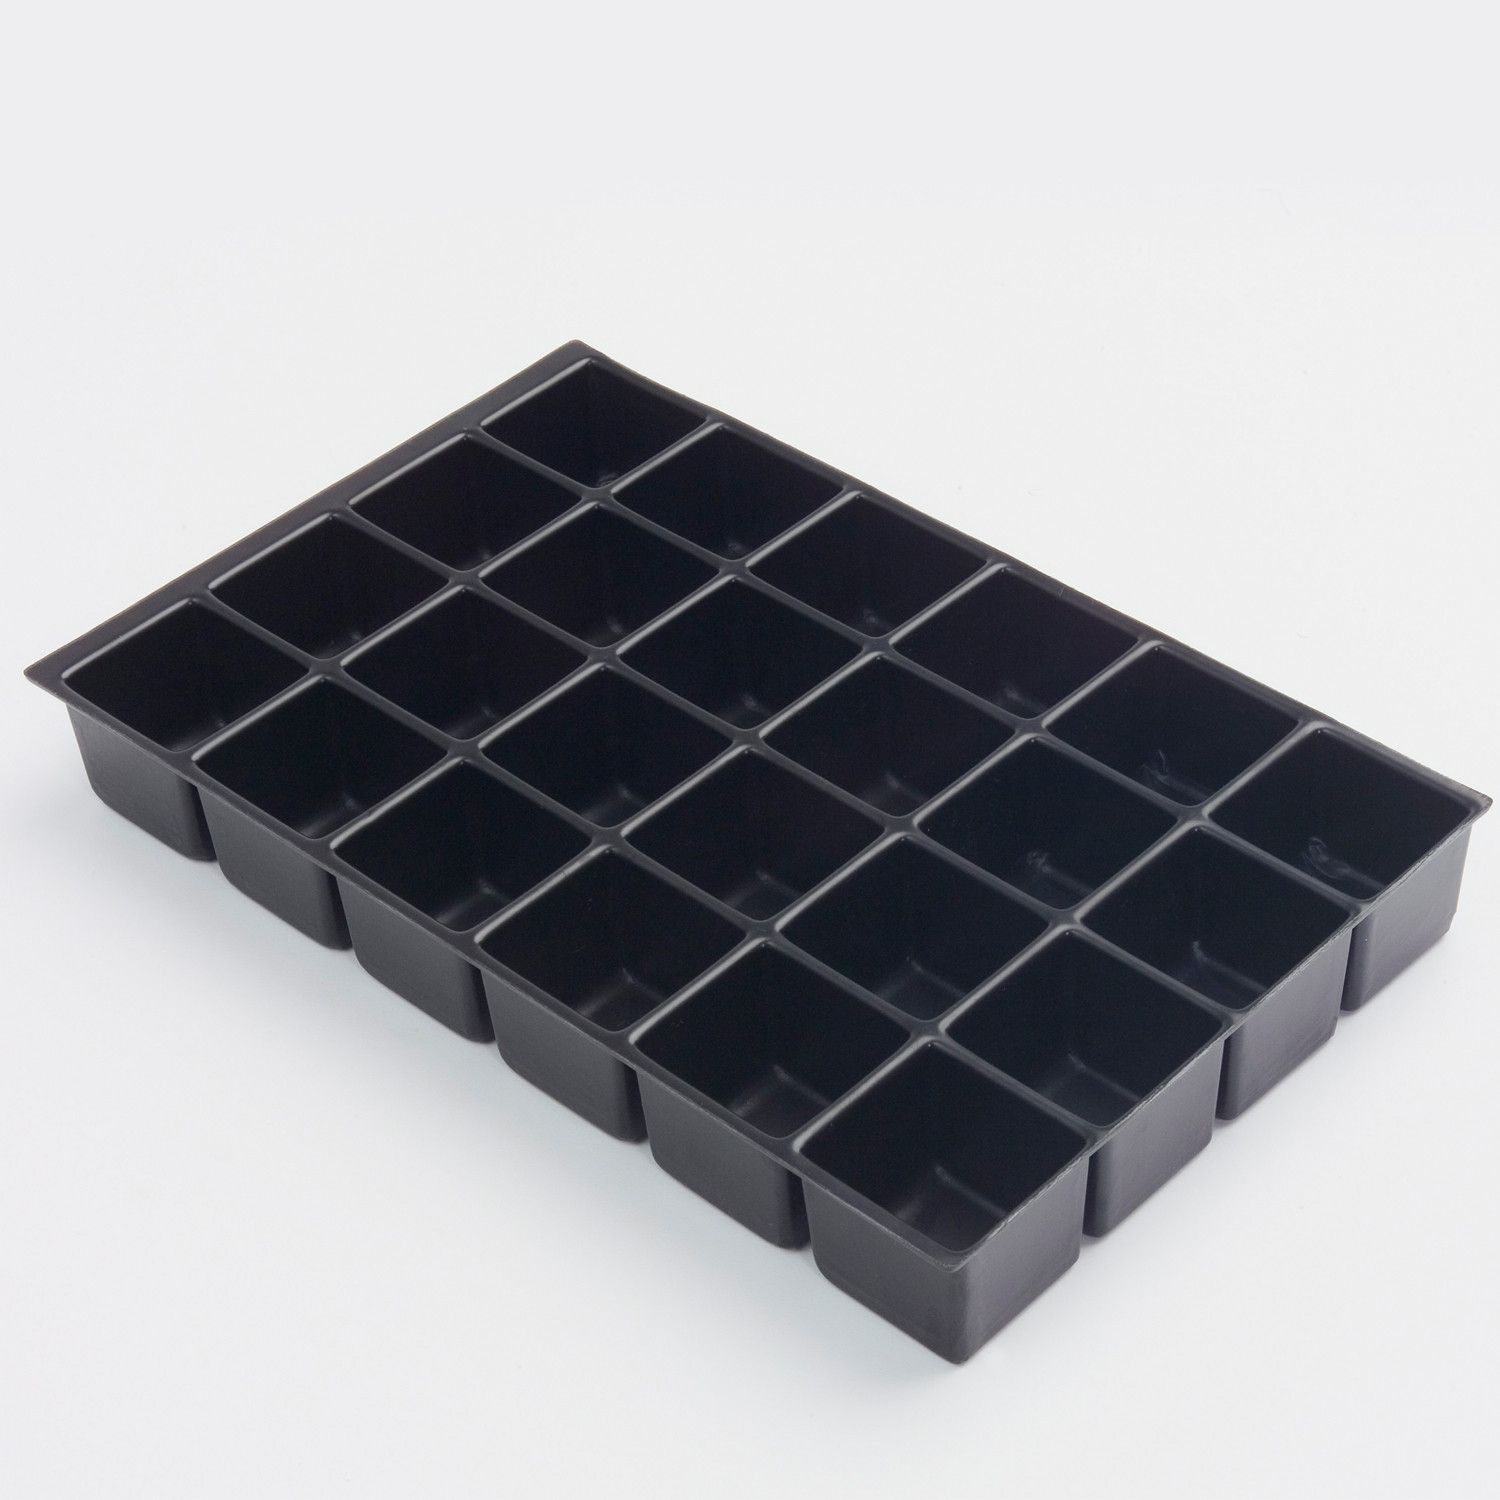 Plastic Multidrawer Insert Tray - 24 Compartments